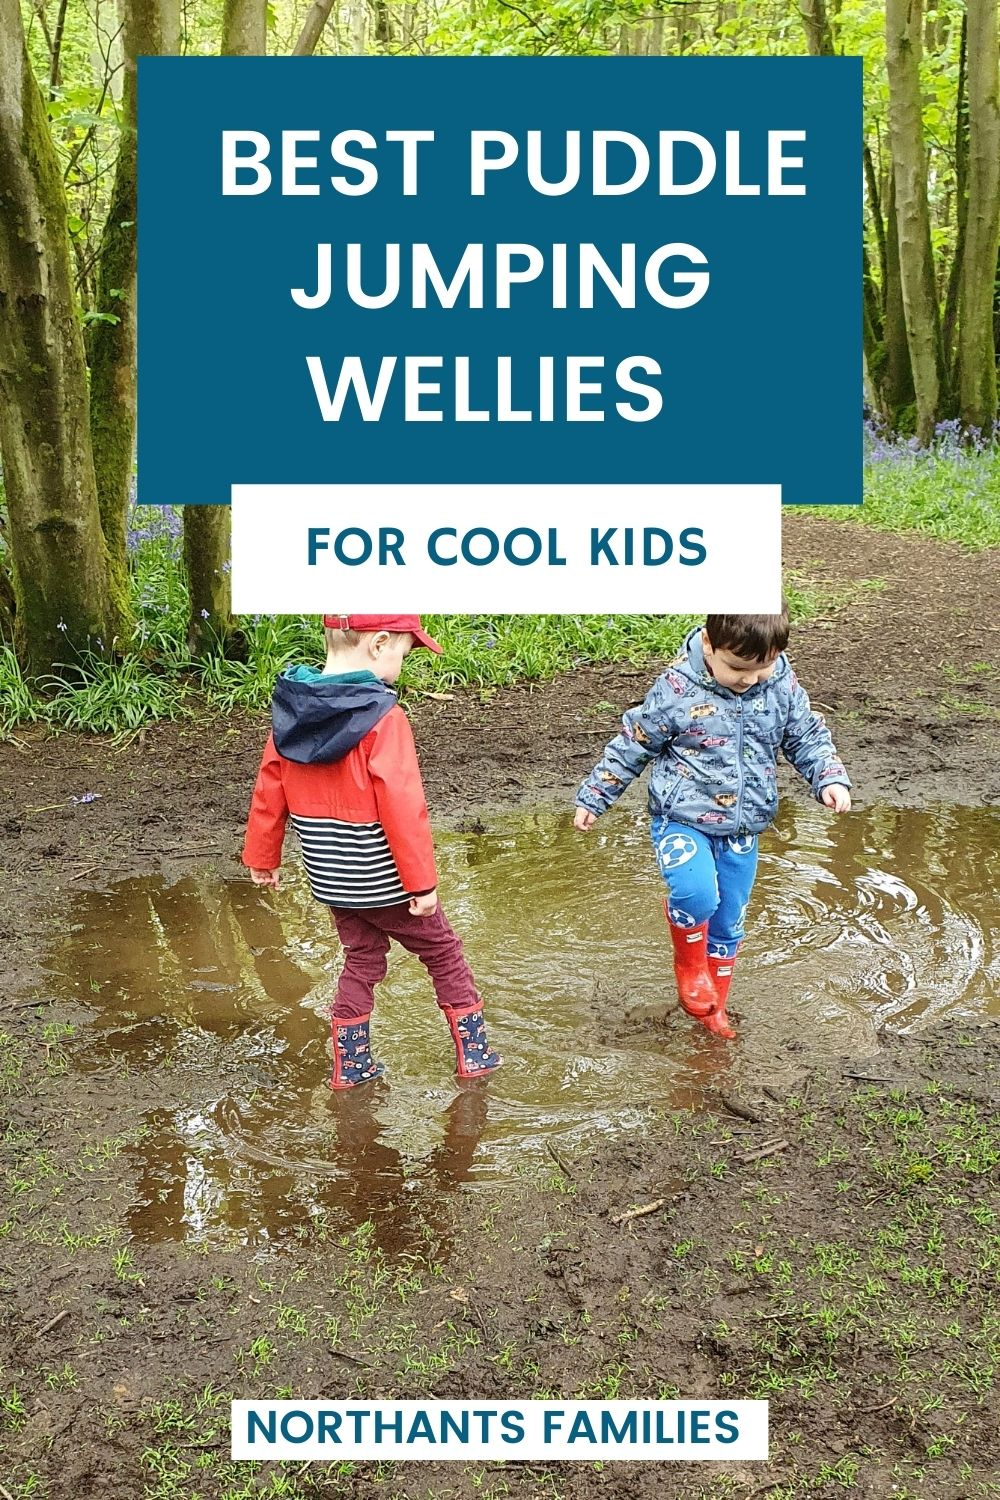 The Best Puddle Jumping Wellies For Cool Kids.